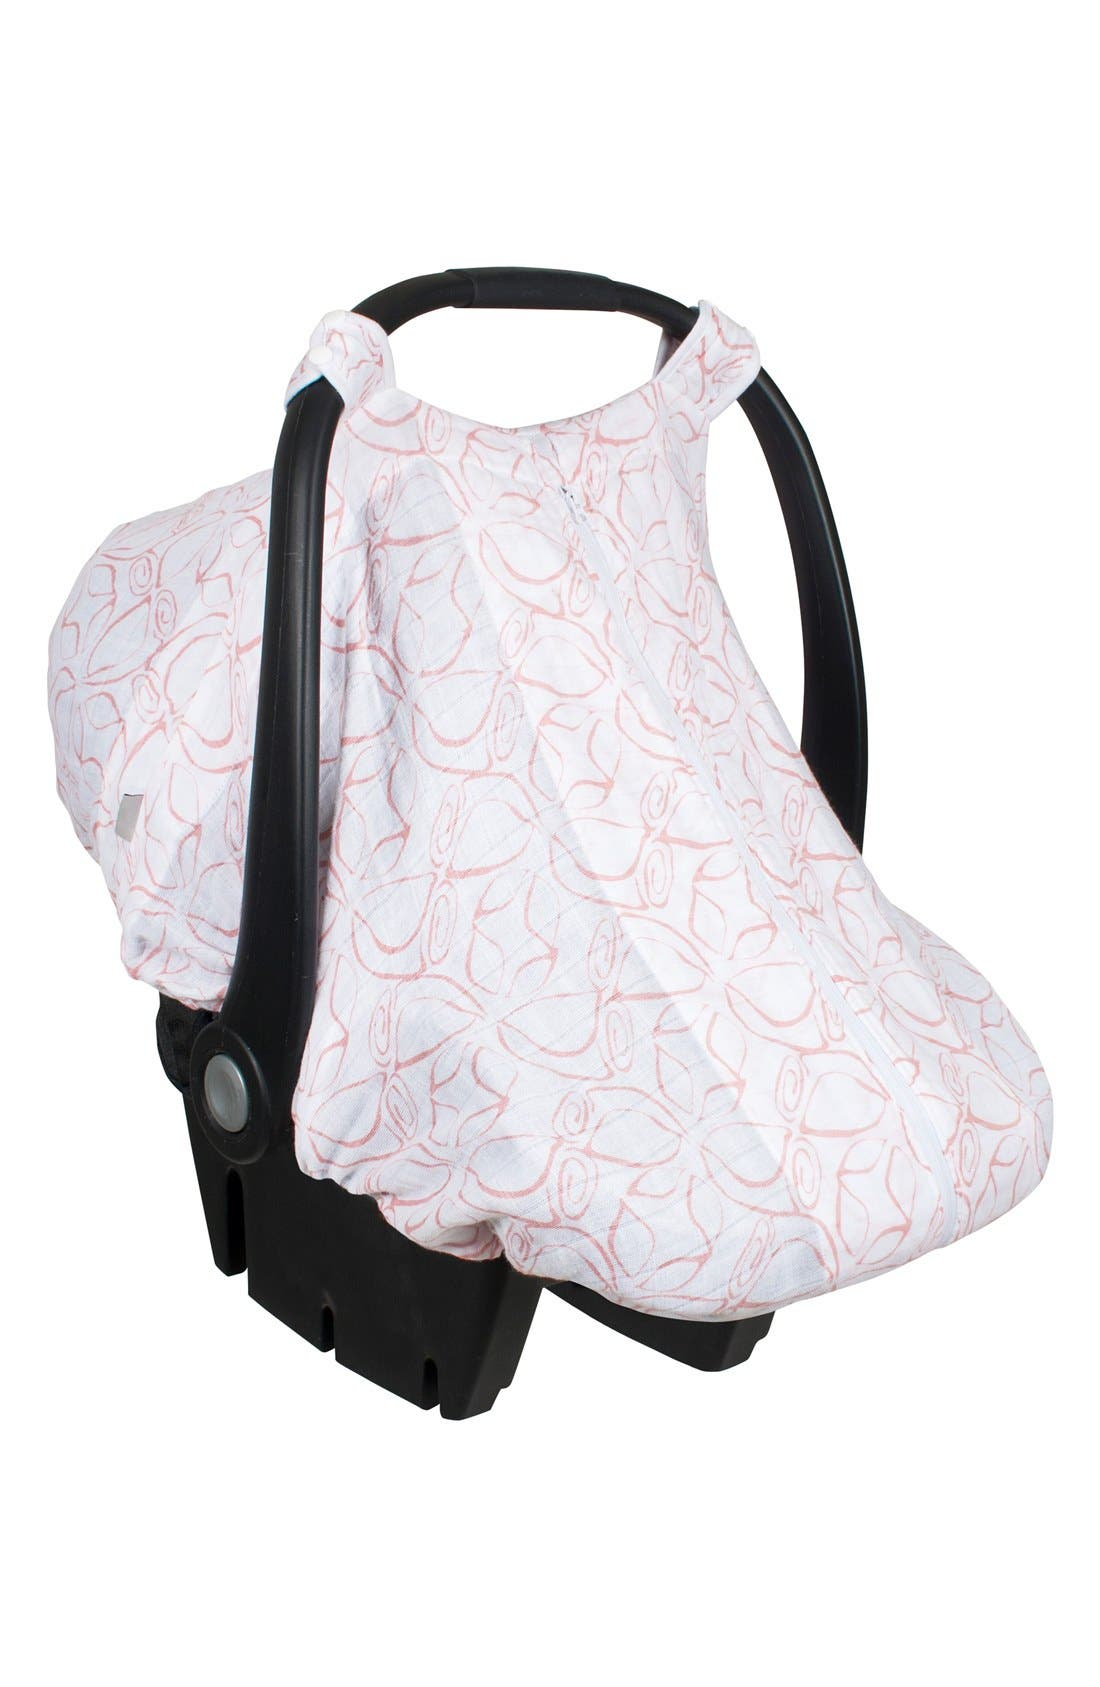 Muslin Car Seat Cover,                             Main thumbnail 1, color,                             101